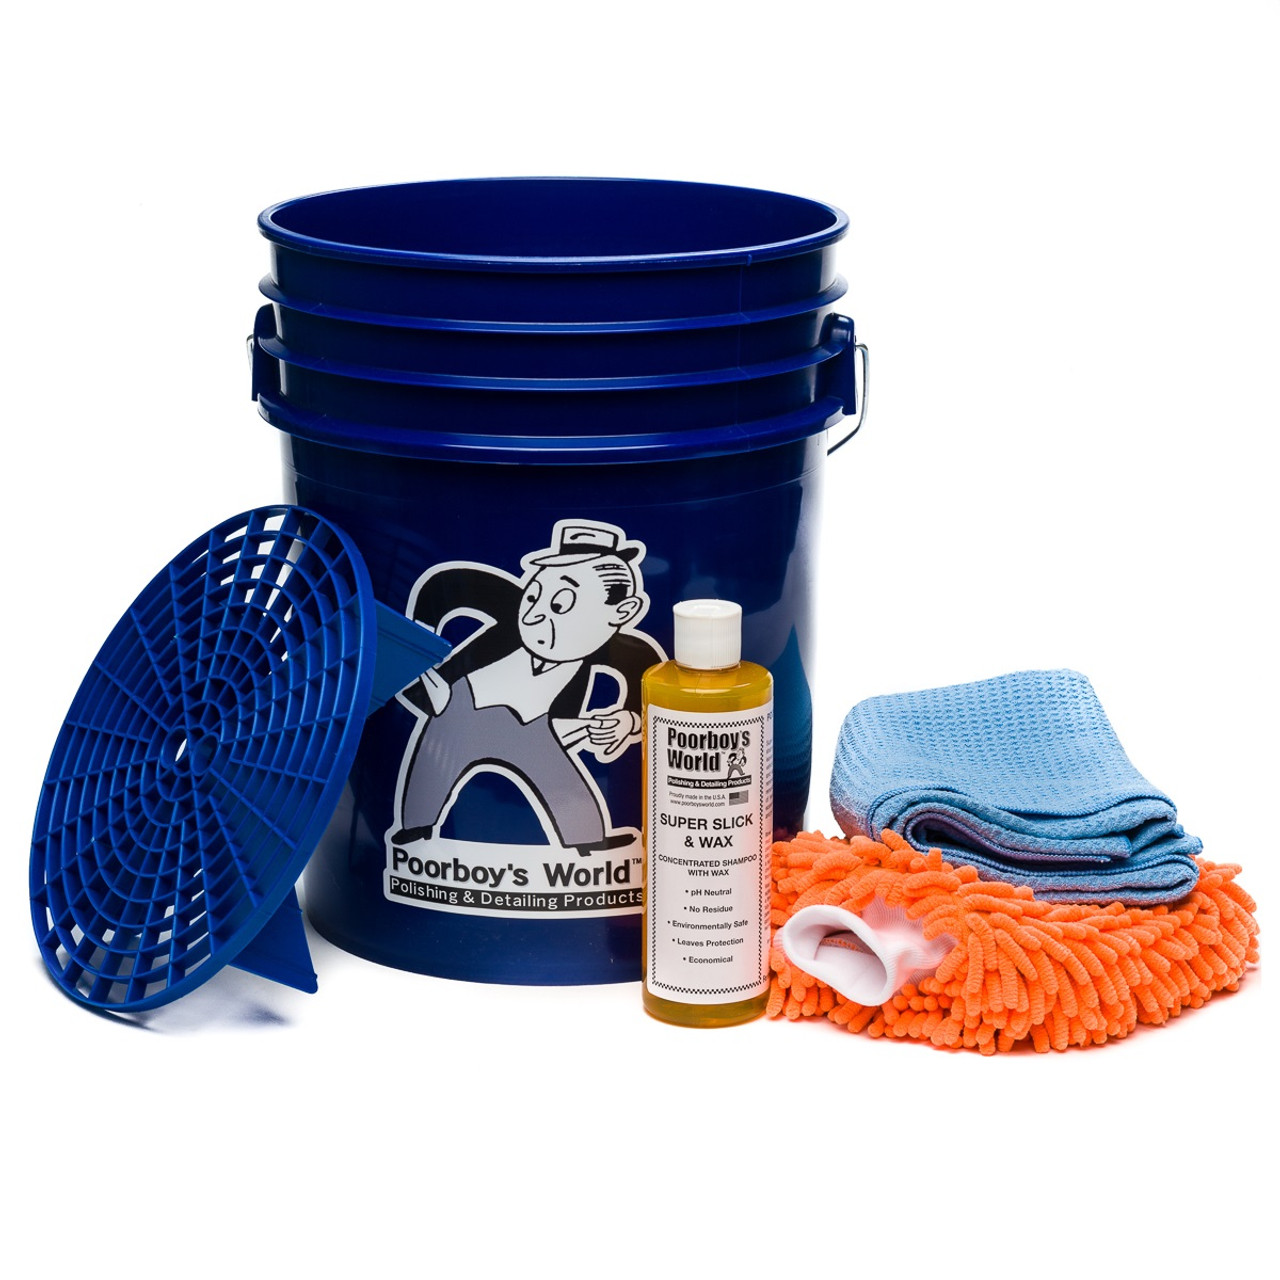 Poorboy's World Car Wash Bucket Special Starter Kit - Blue Bucket